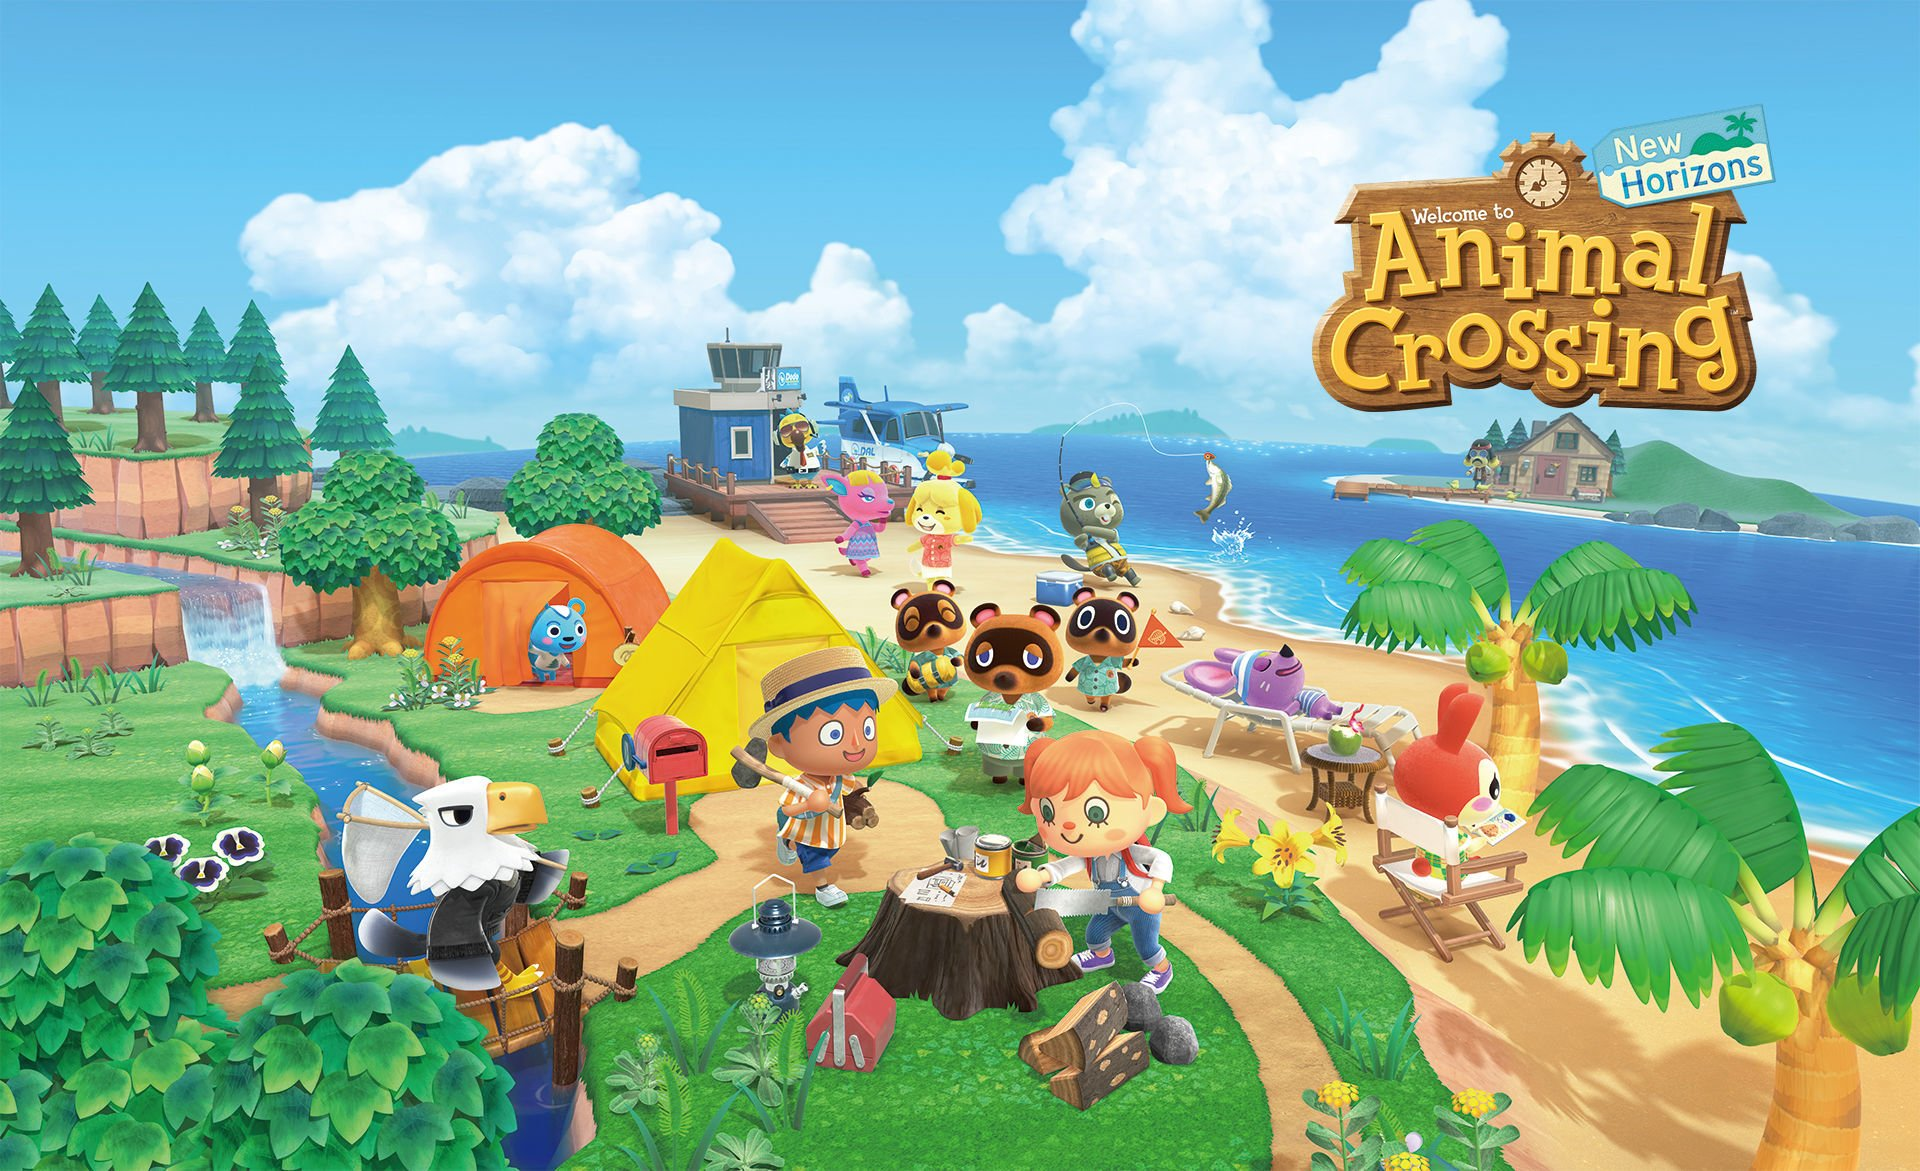 Animal Crossing: New Horizons - Where to Find the Bugs by Type